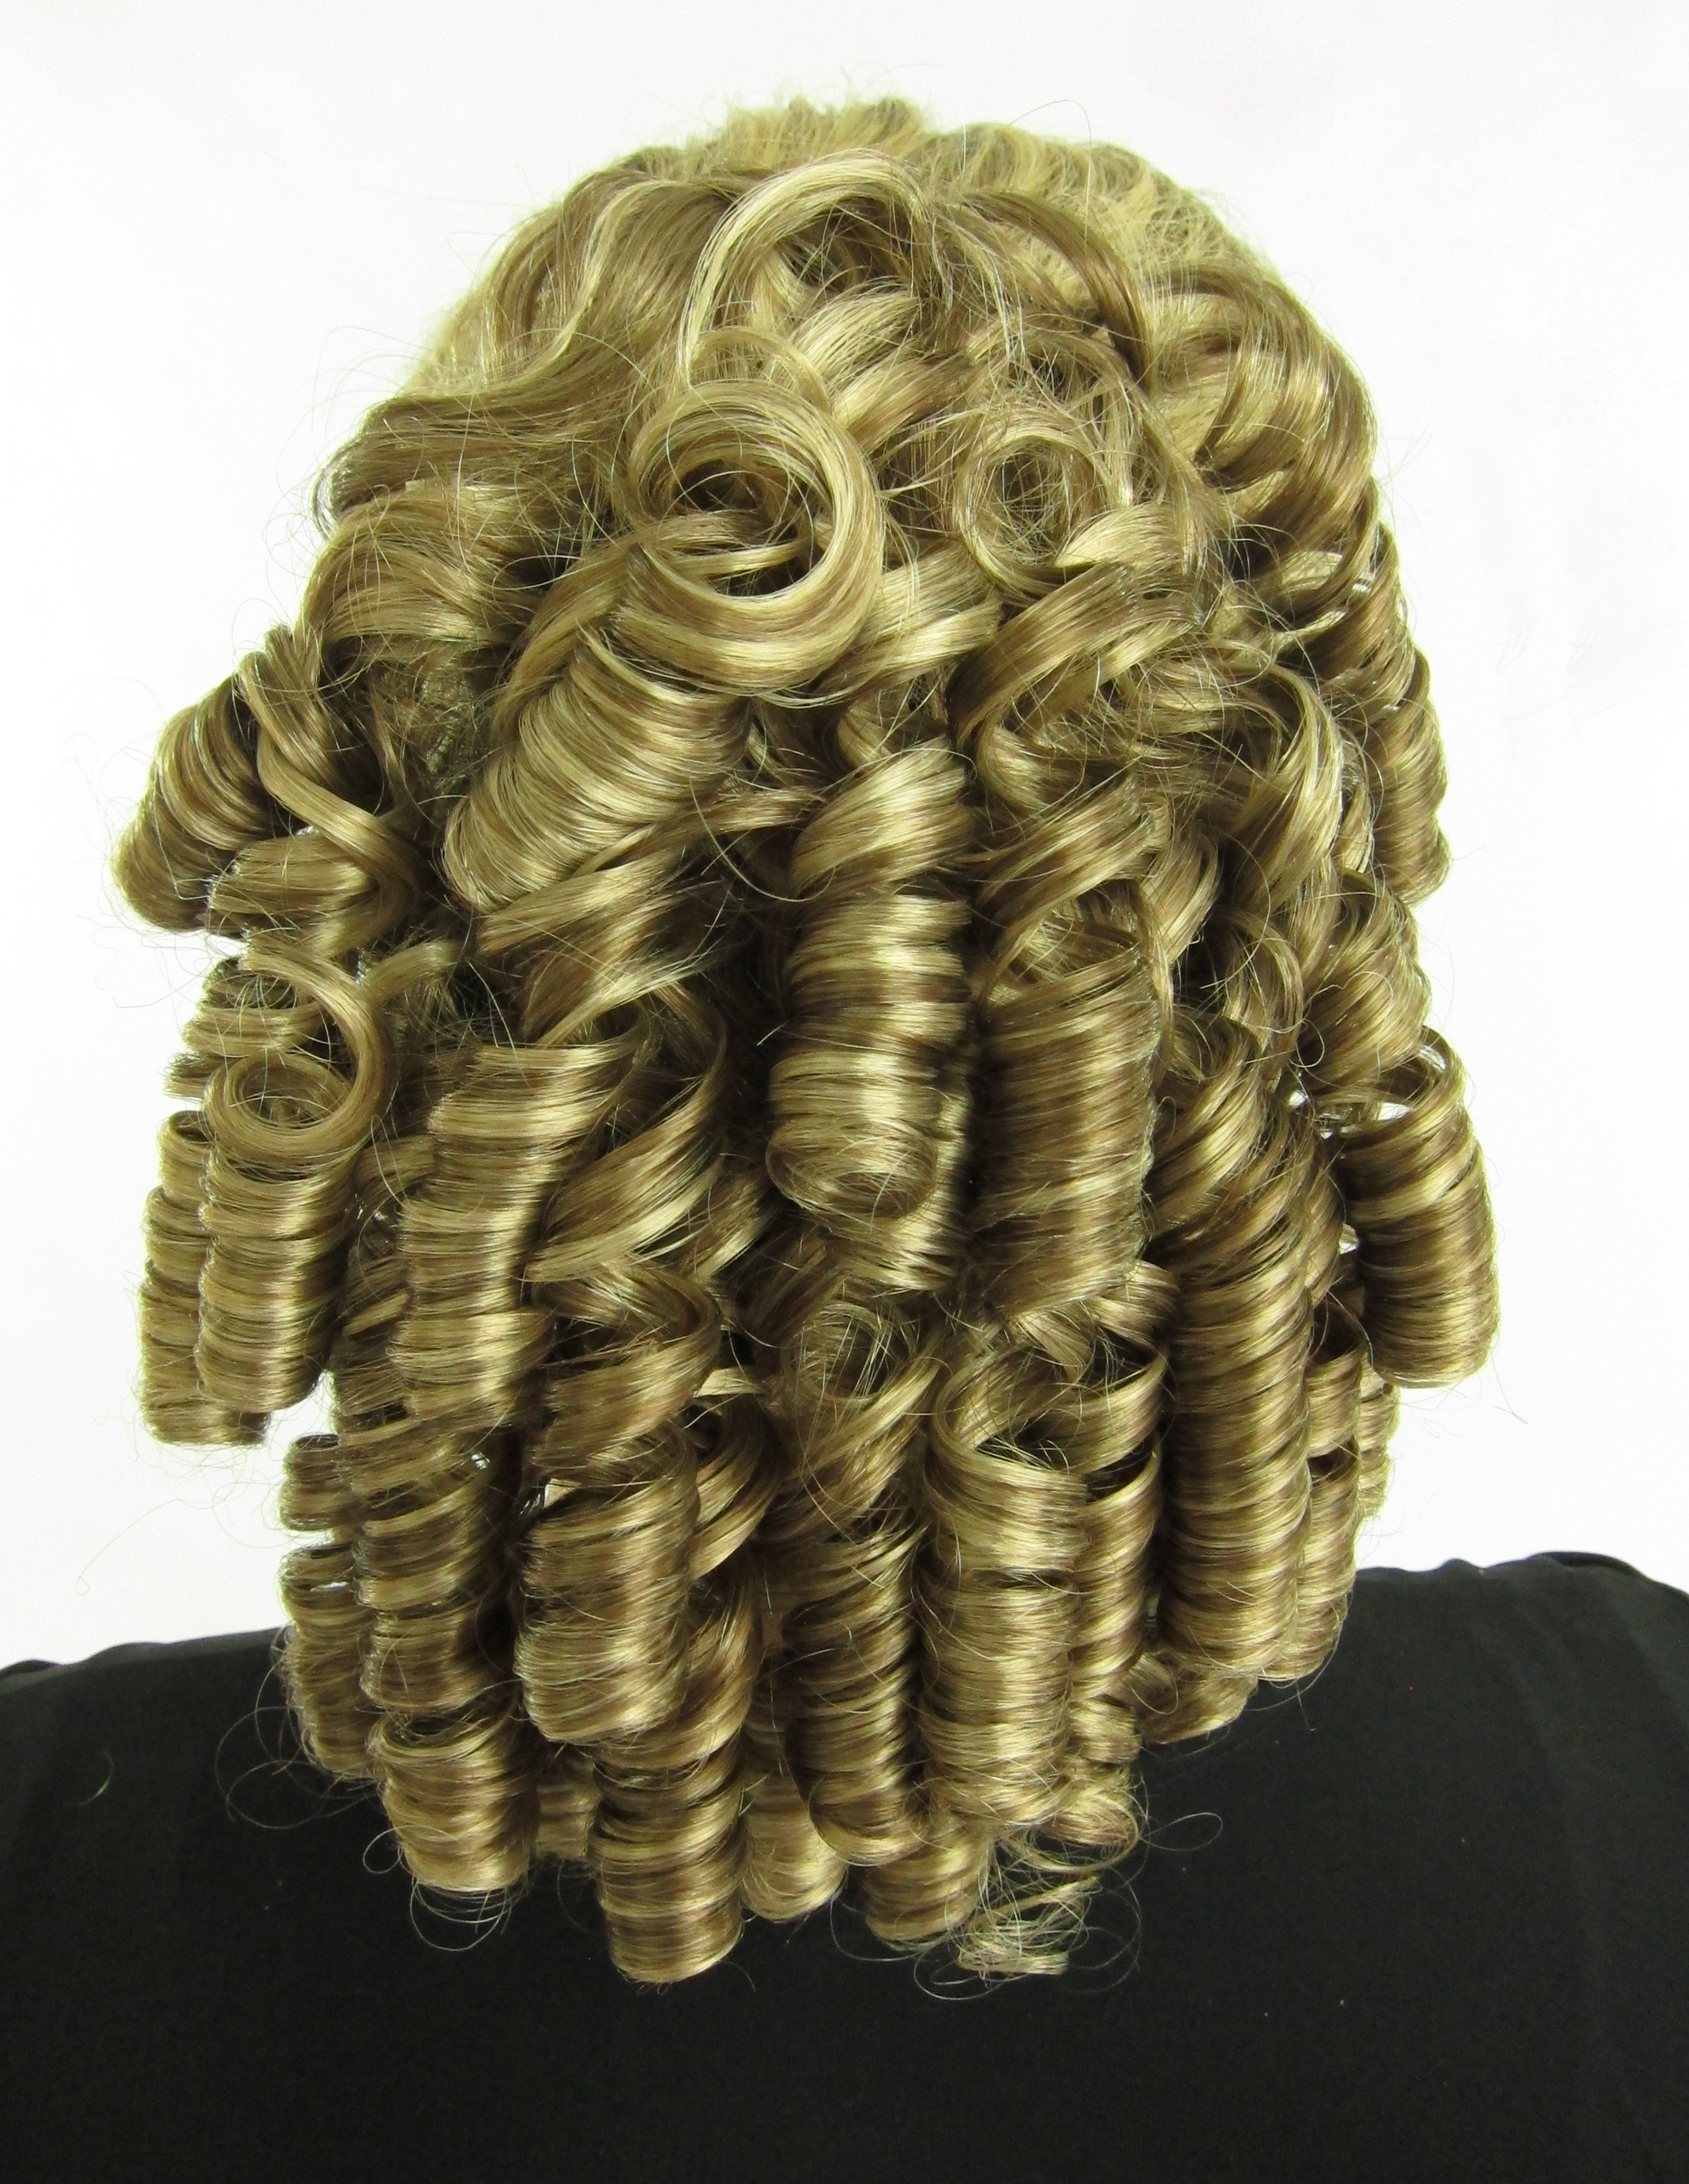 Medium Ringlet Curls, Civil War, Dickens,